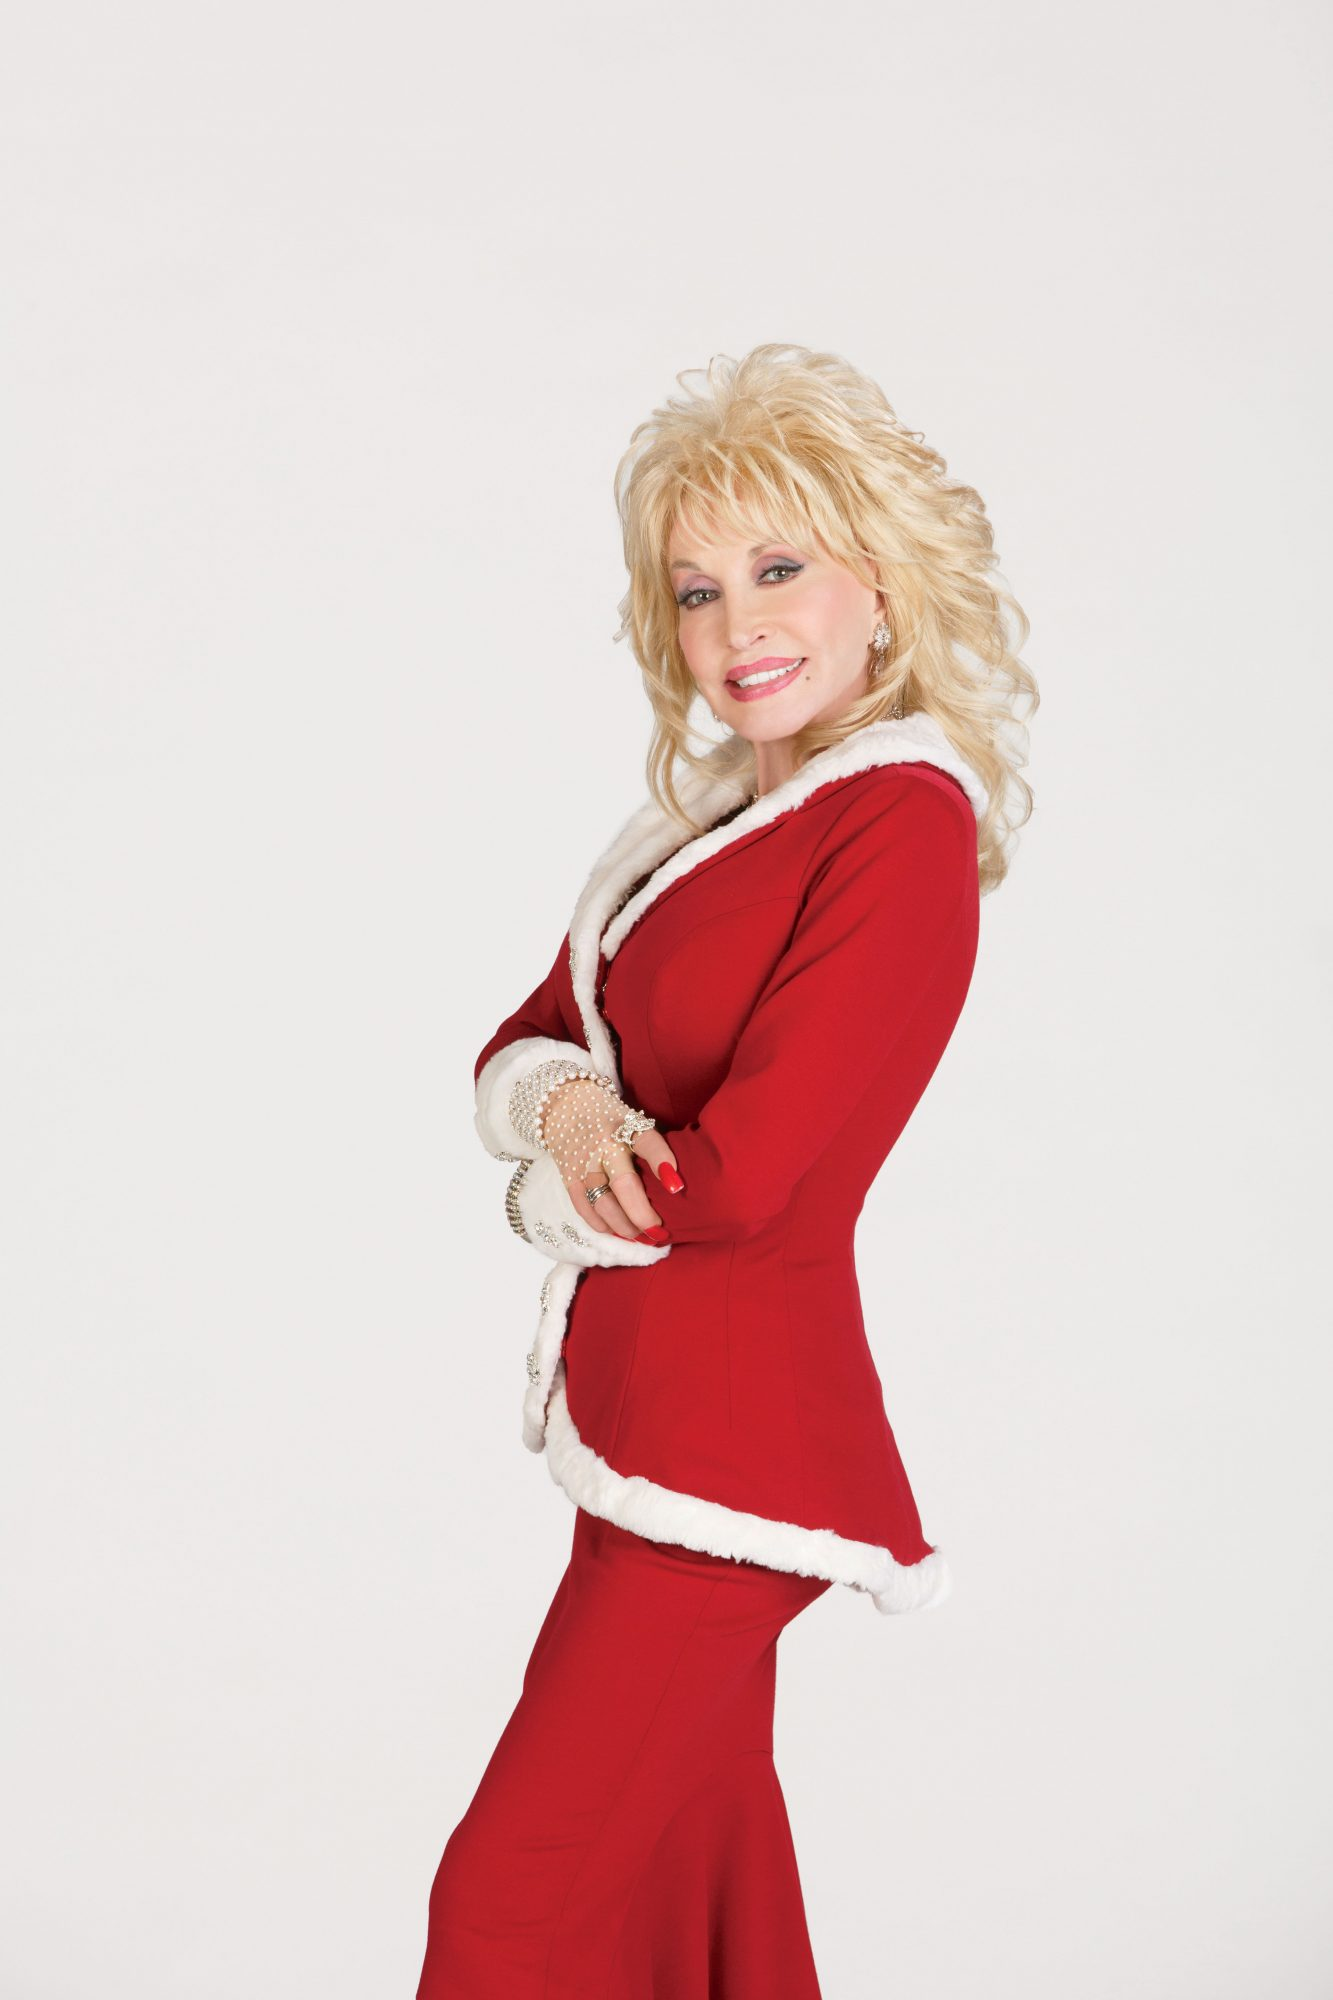 Dolly in Christmas Suit